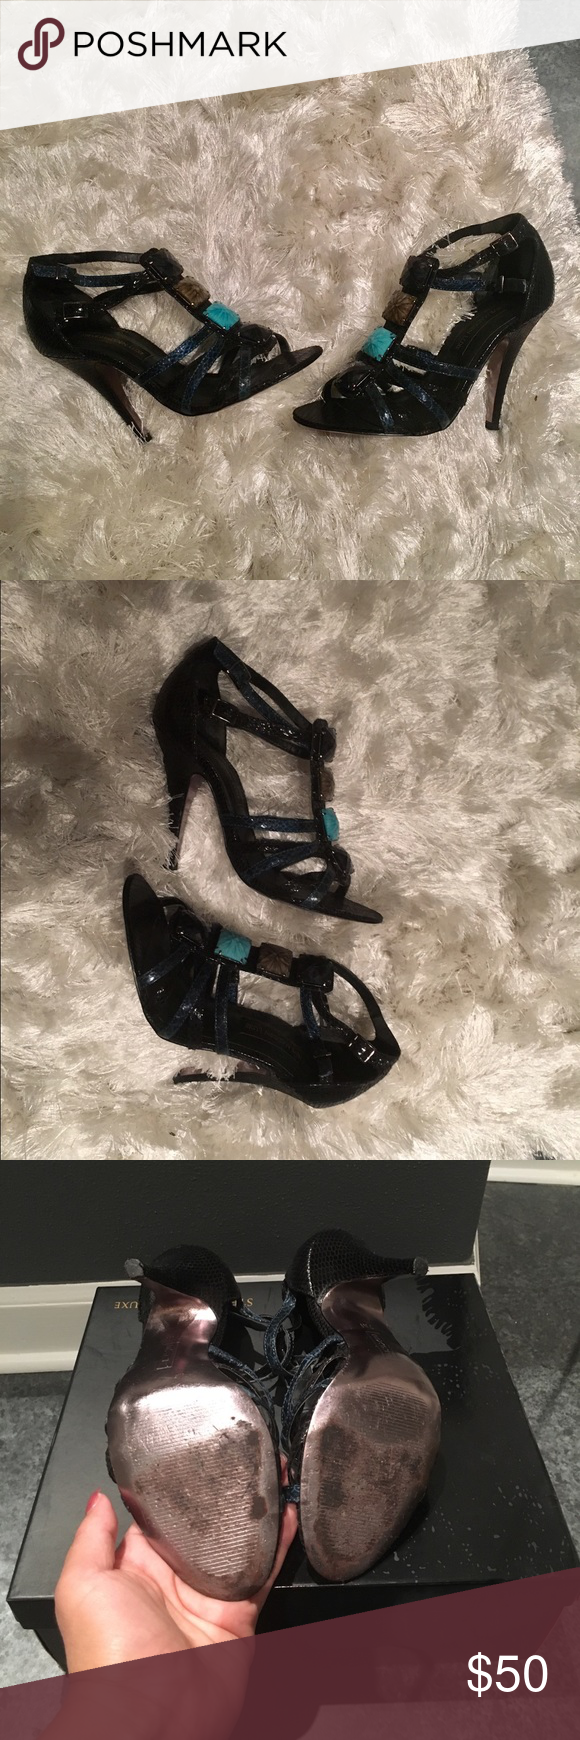 Steve Madden Heels Preloved condition Steve Madden Luxe Heels L-Ombre black & blue. $45 OBO. Steve Madden Shoes Heels